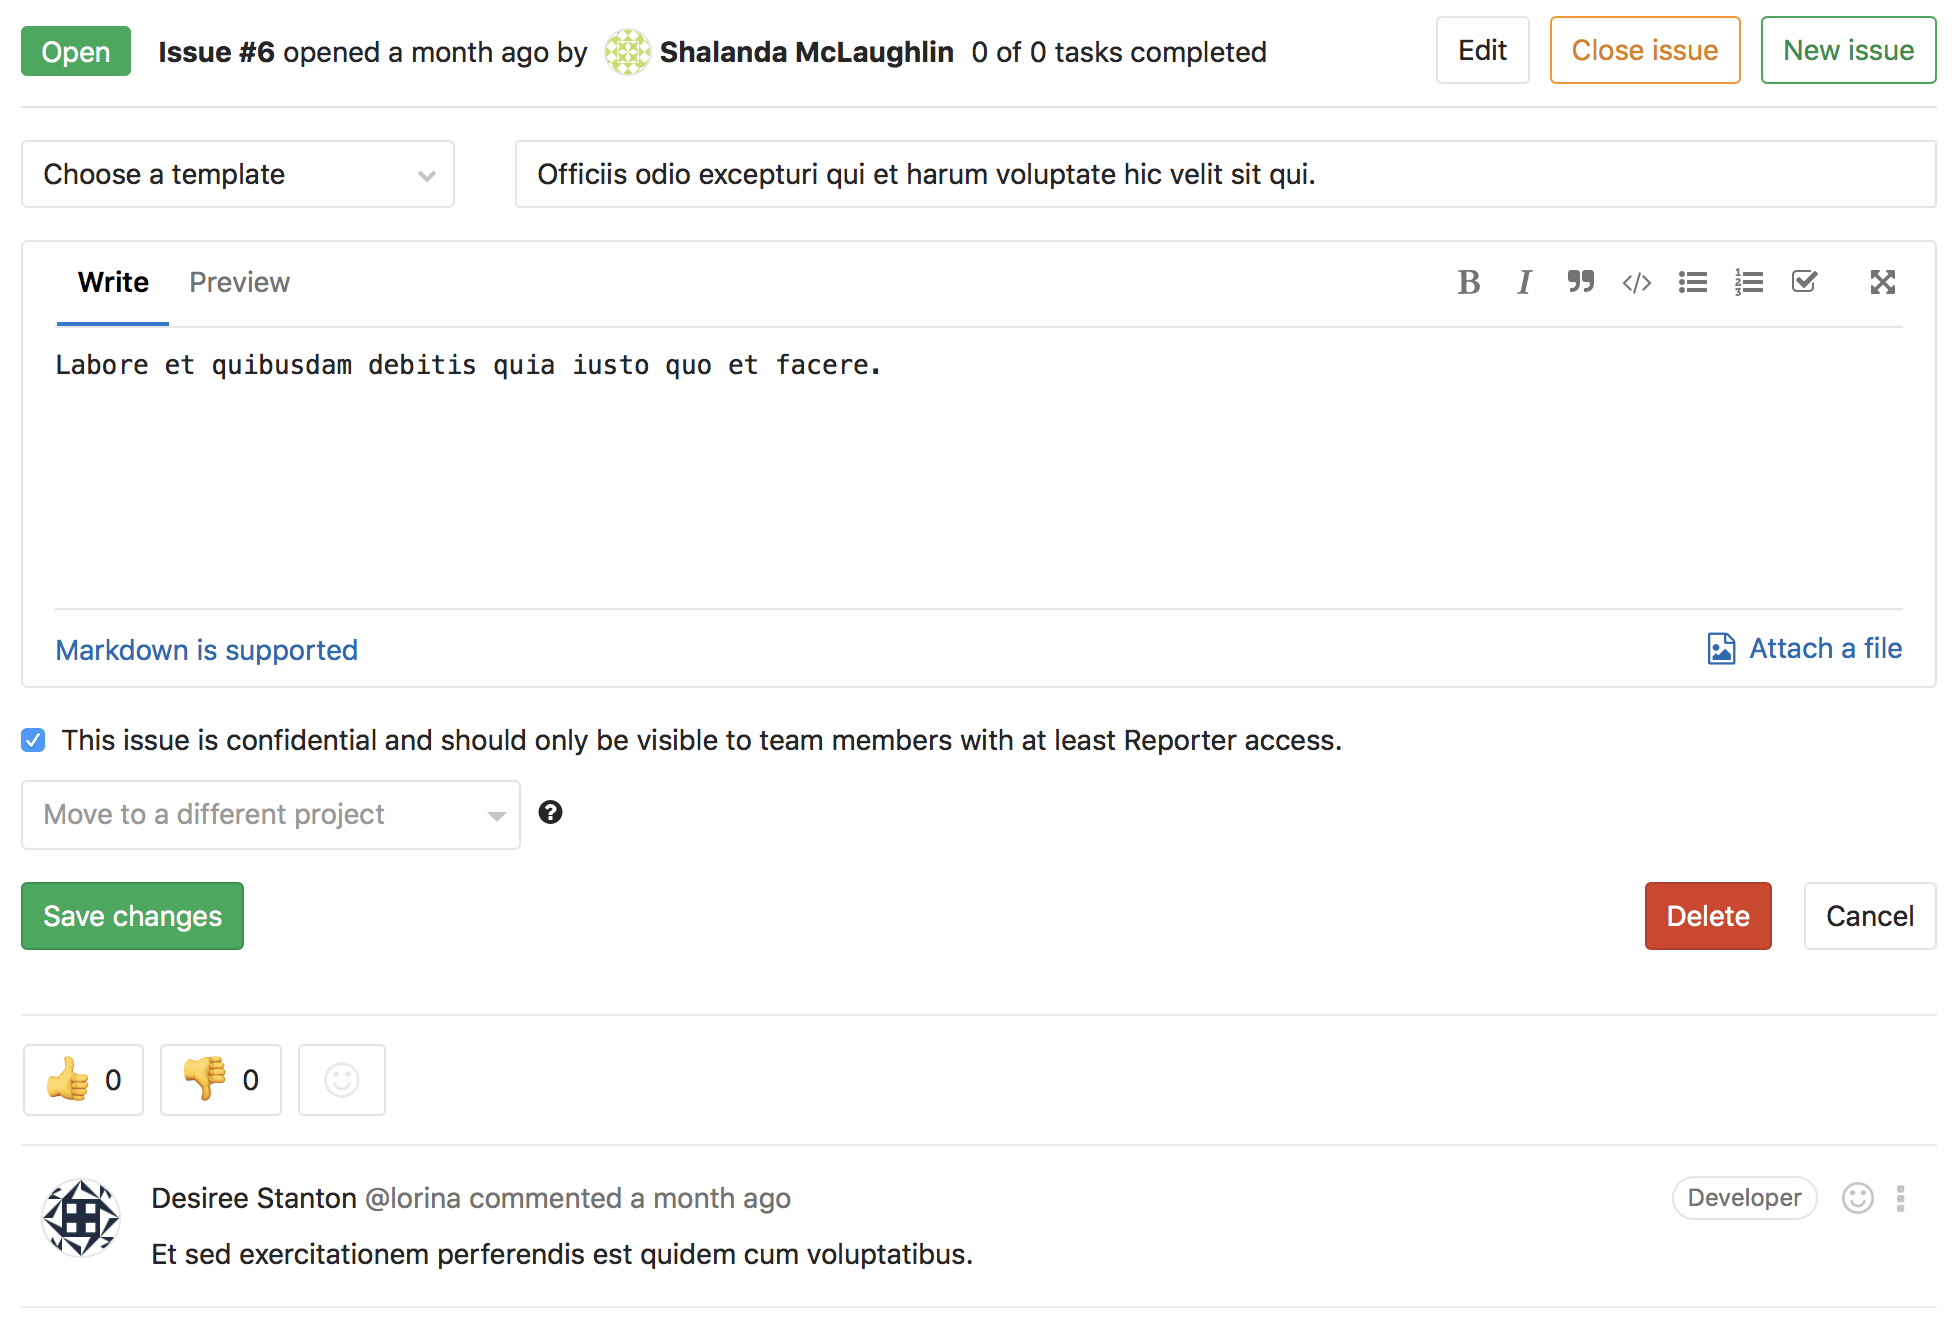 Edit Issue Description Inline, Without Losing Context